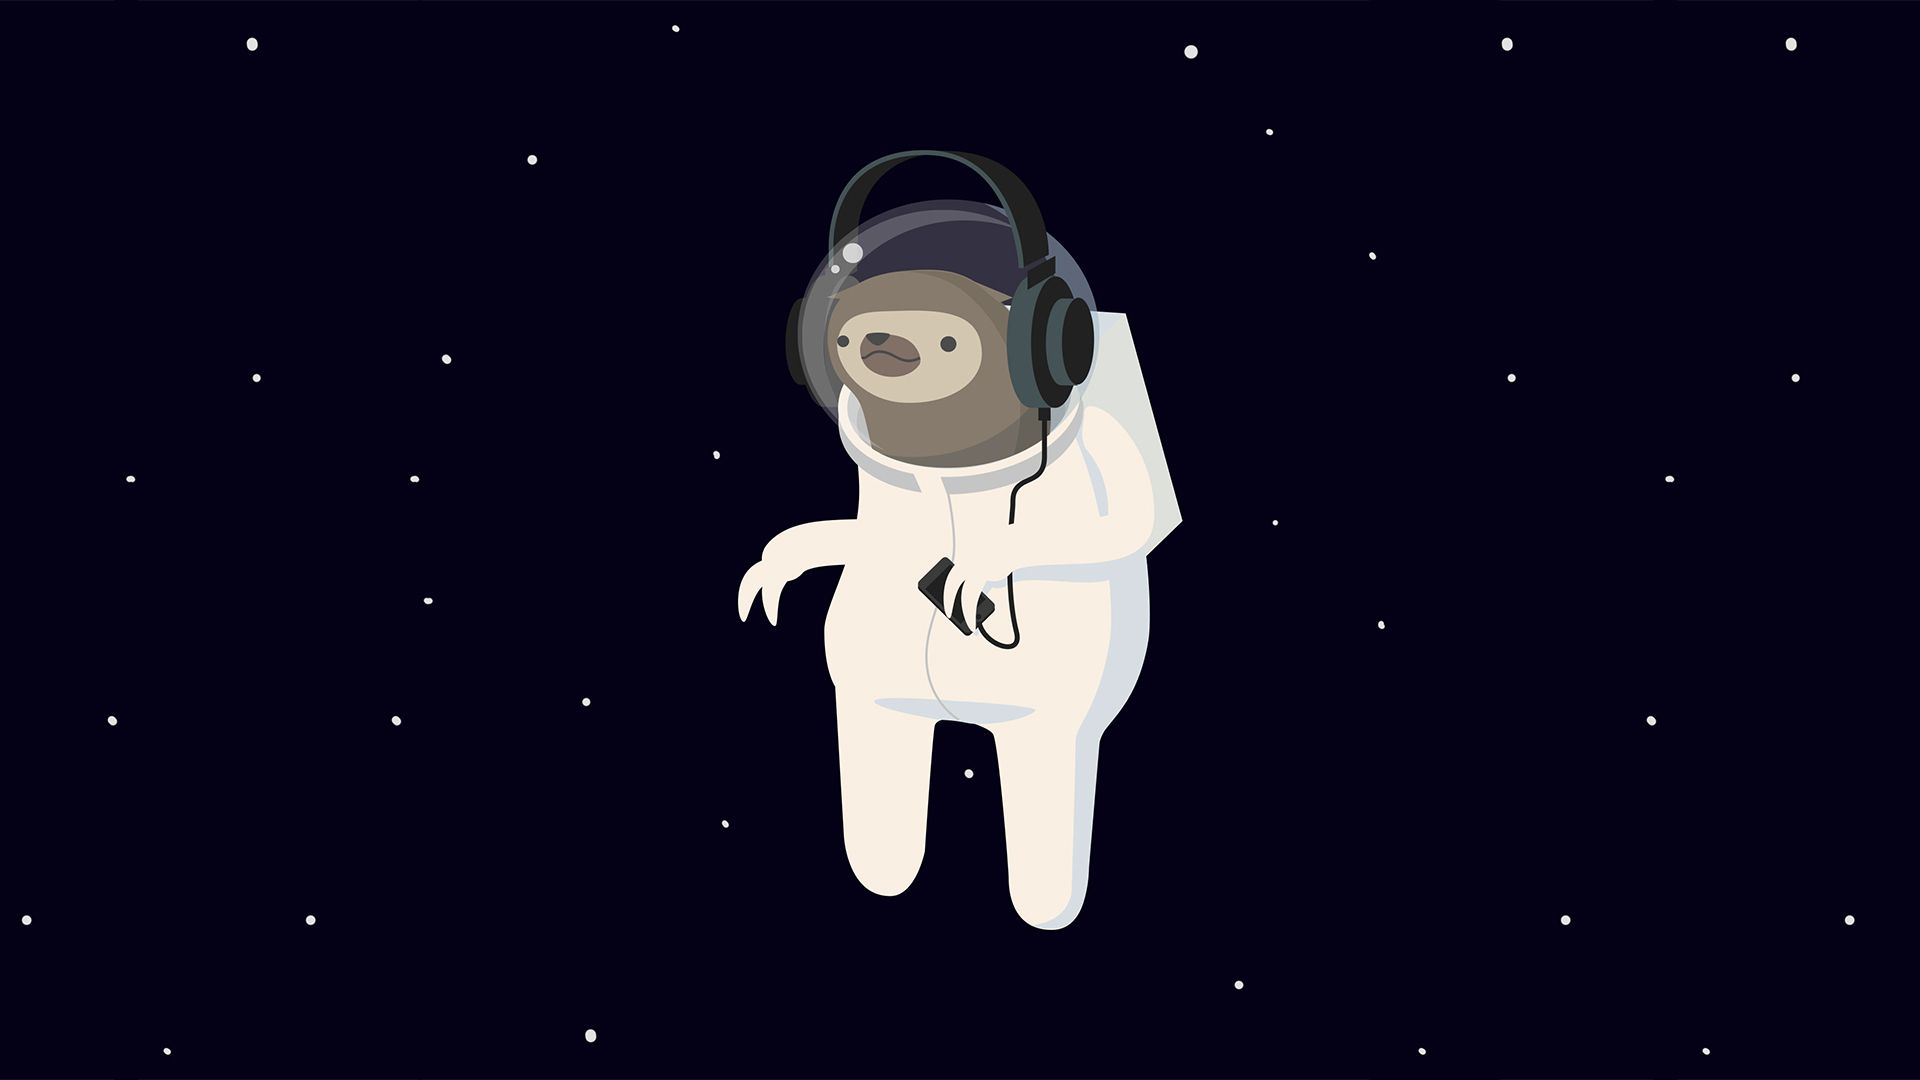 1920 x 1080. Space sloth. Minimal Wallpaper Pinterest